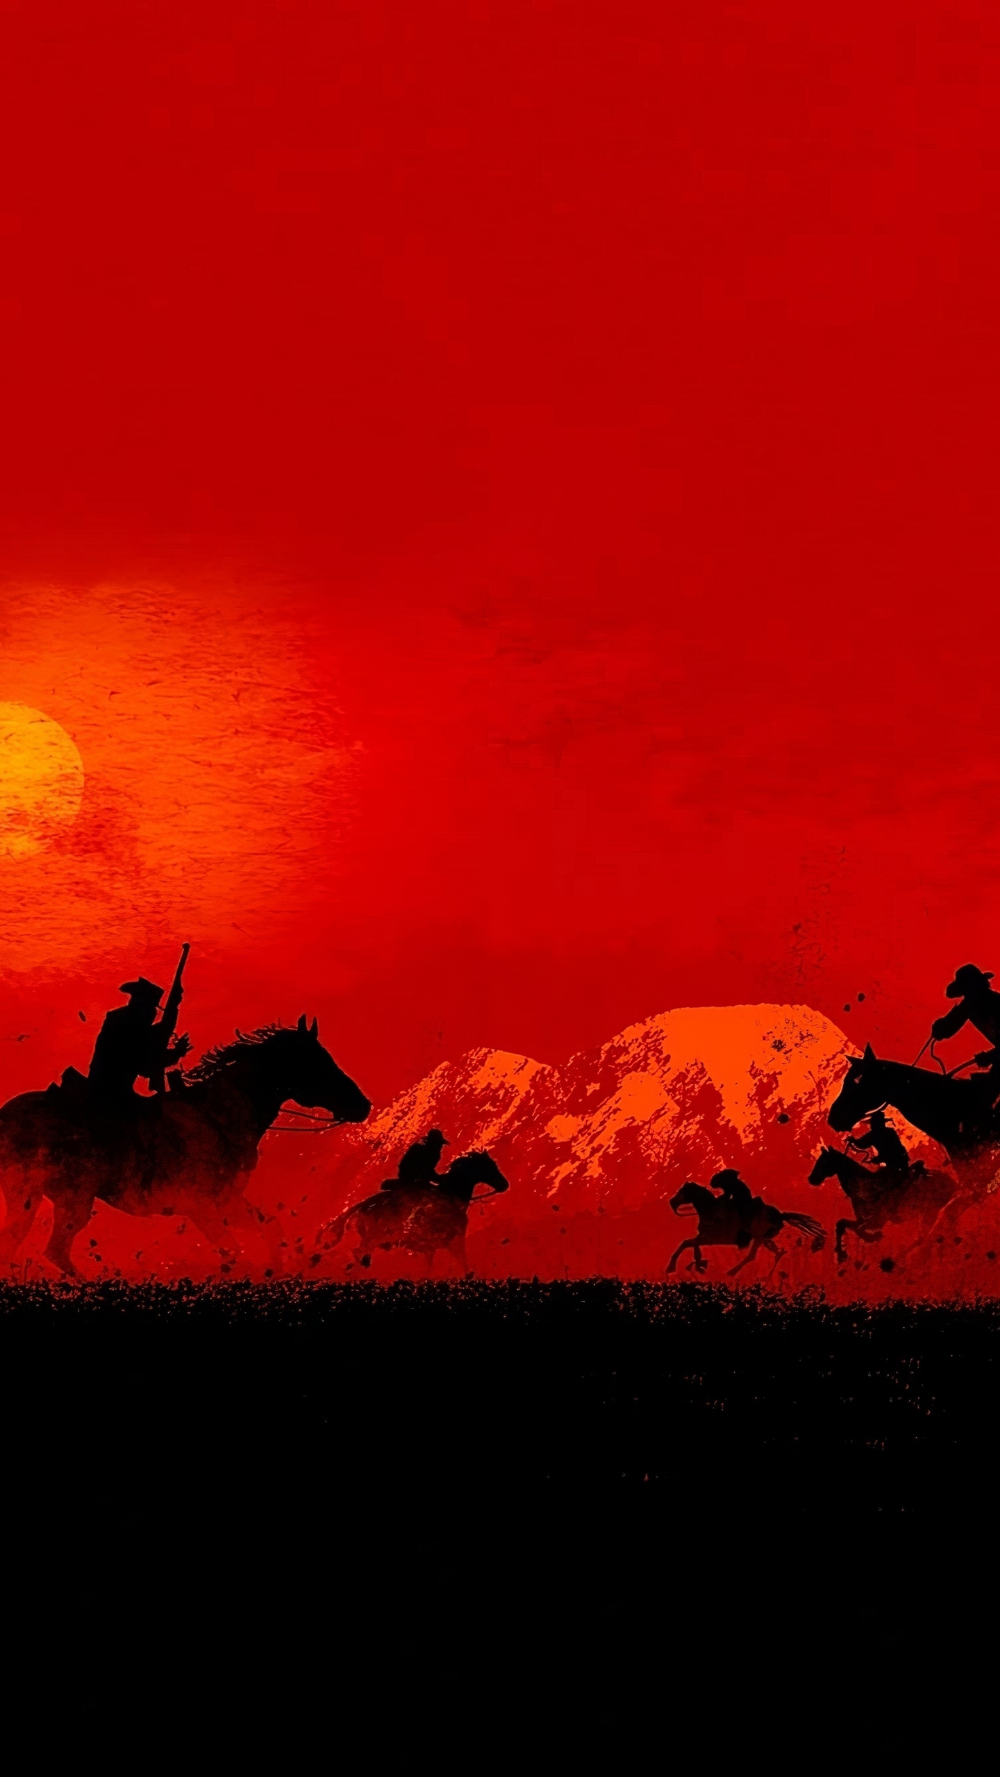 1440x2560 Red Dead Redemption 2 Cowboys Game 2019 Wallpaper Red Dead Redemption Red Dead Redemption Art Never Settle Wallpapers